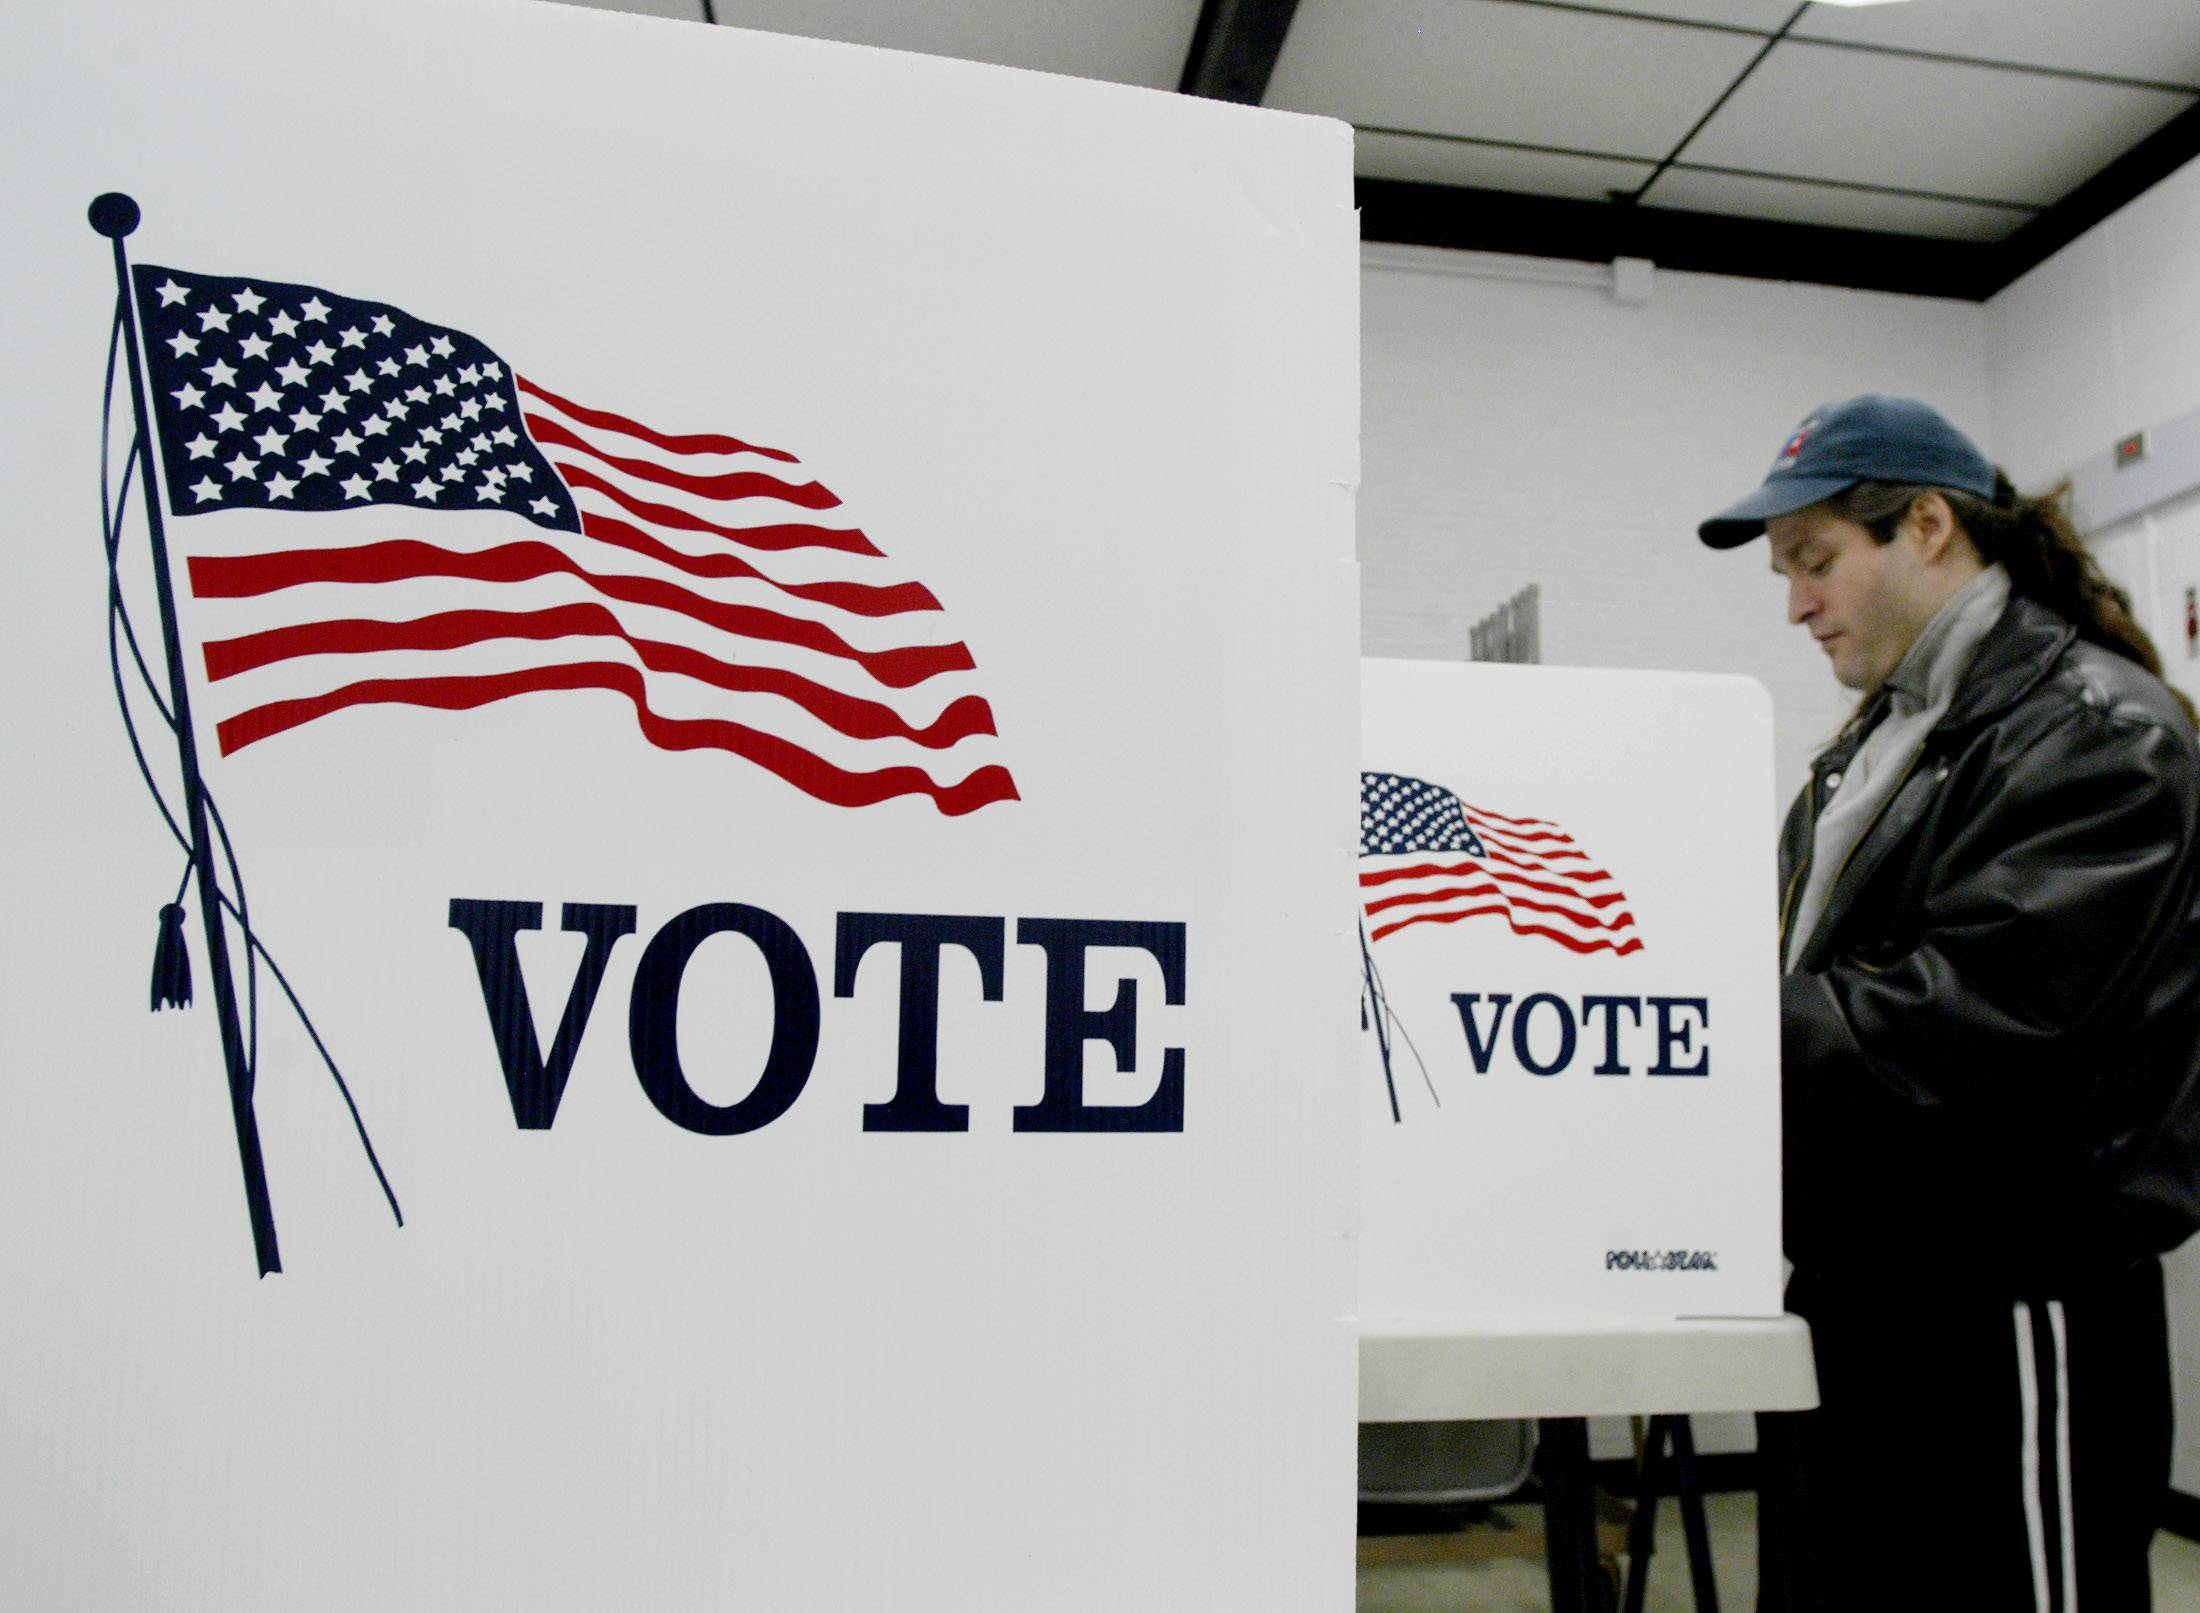 Voting today: Polling places, voters' rights, online help